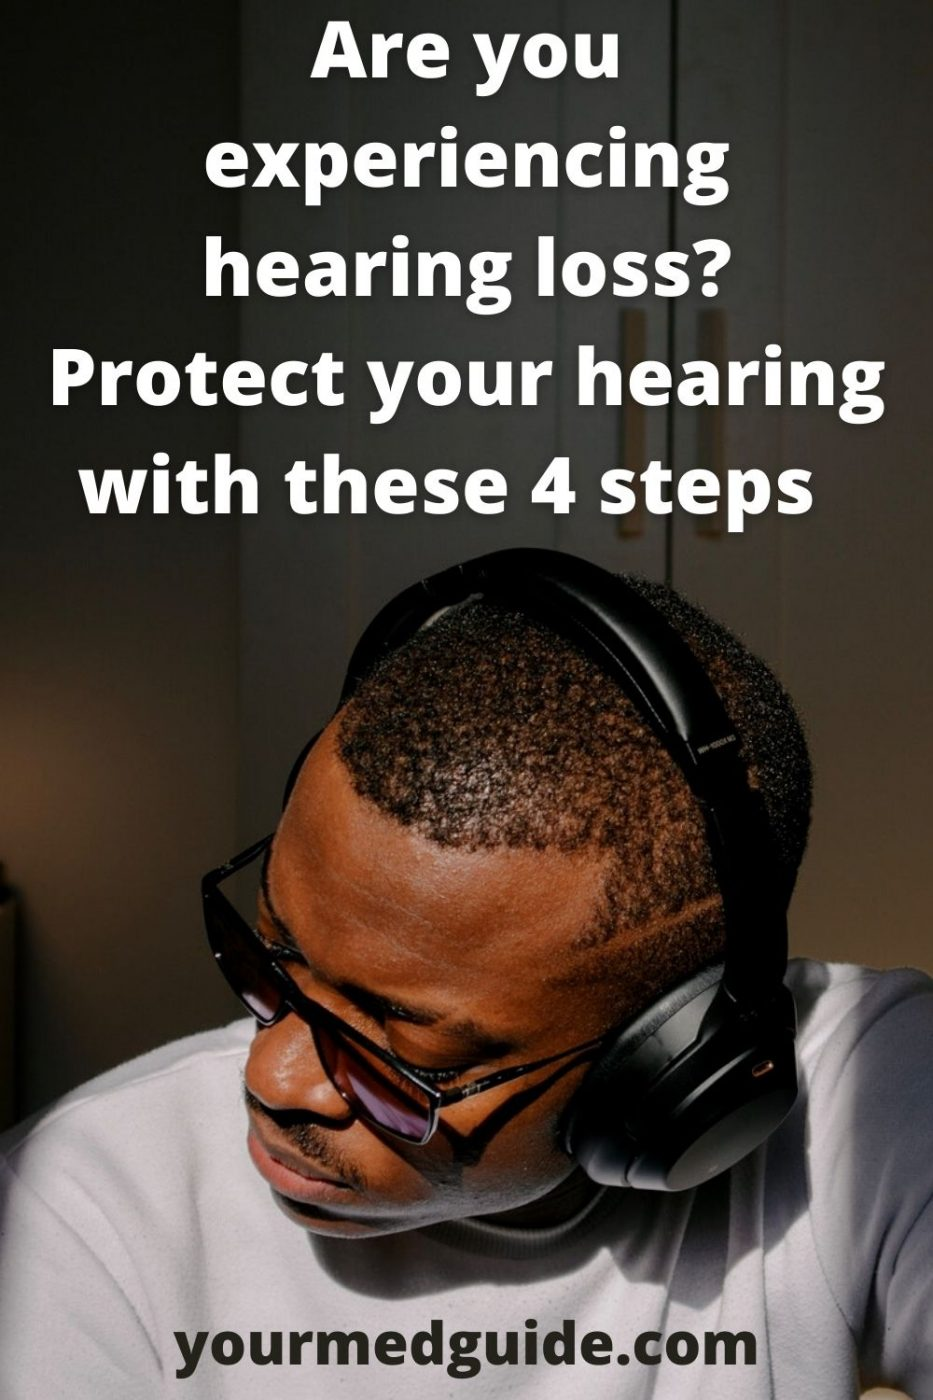 Are you experiencing hearing loss